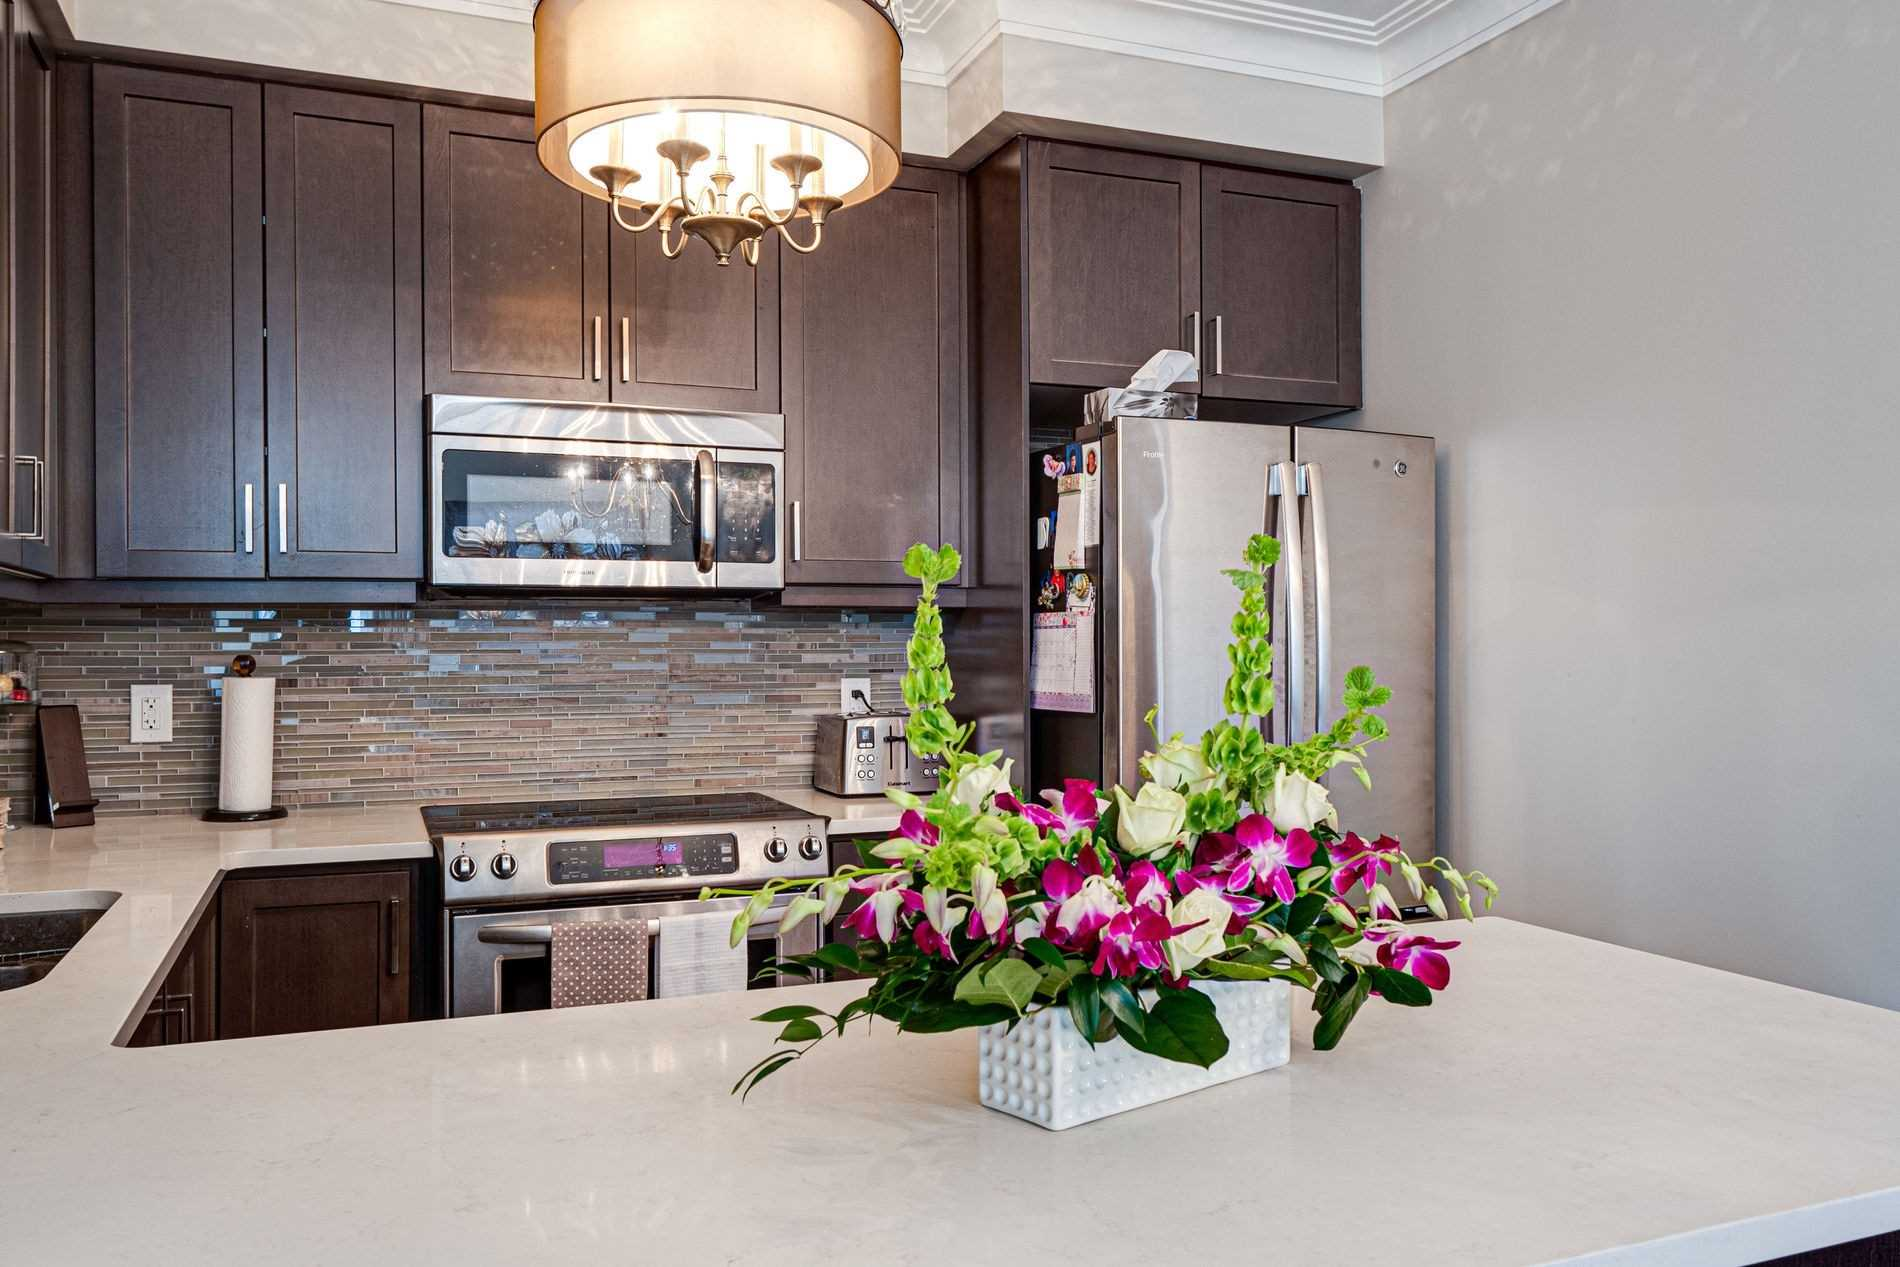 Image 40 of 40 showing inside of 2 Bedroom Condo Apt Apartment for Sale at 9255 Jane St Unit# 1702, Vaughan L6A0K1